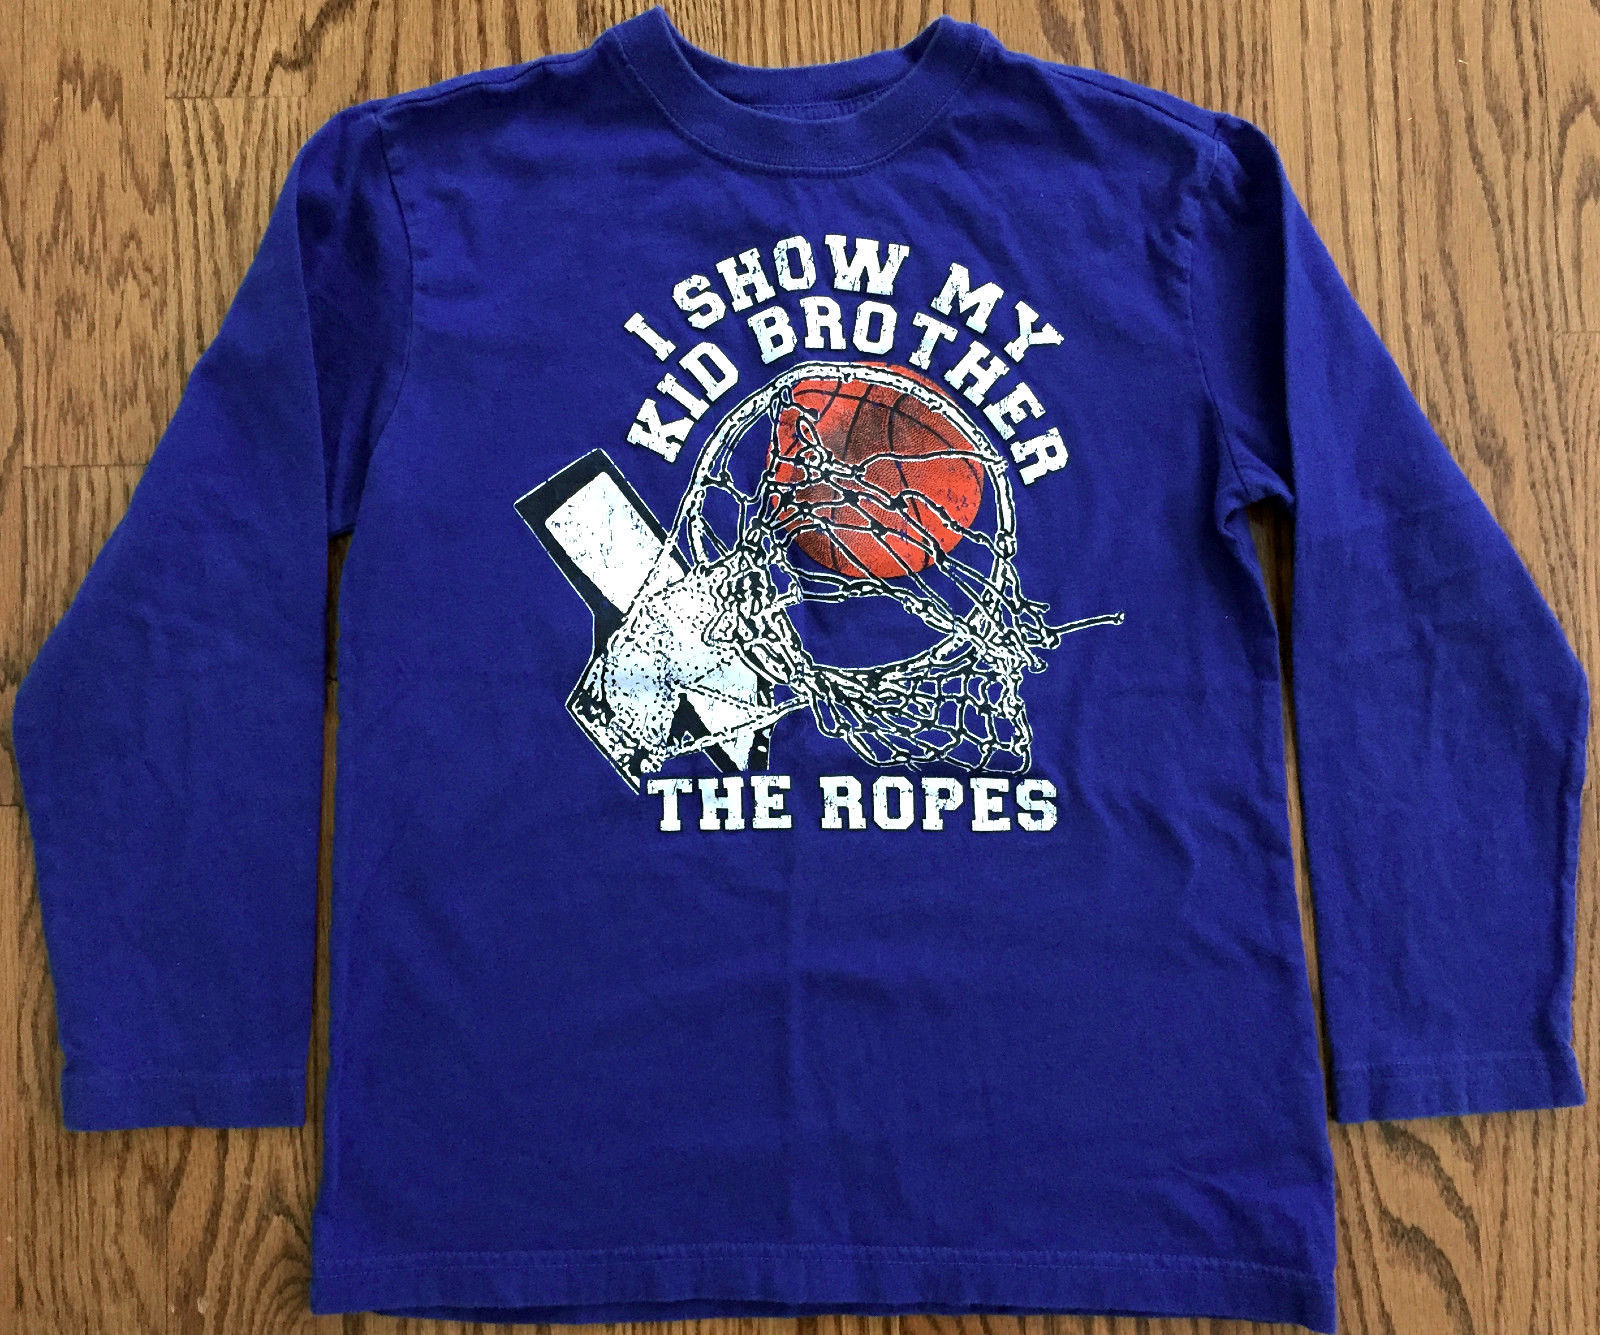 """PLACE BOYS BLUE T-SHIRT SZ M 7-8 BASKETBALL """"I SHOW MY KID BROTHER THE ROPES""""EUC"""